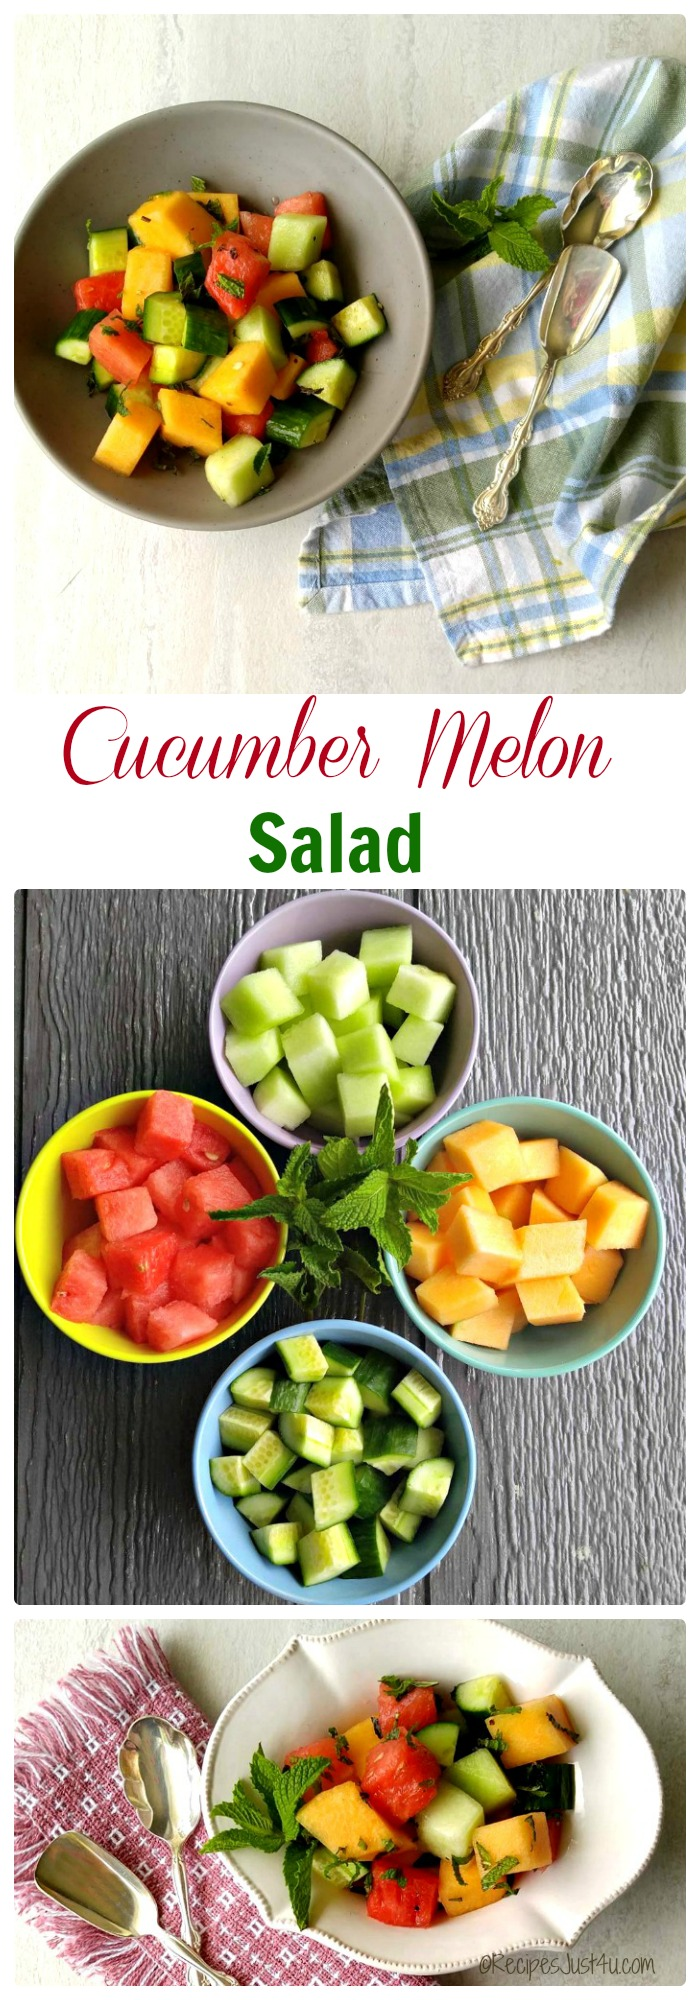 Cucumber Melon Salad - Refreshing Summer Treat